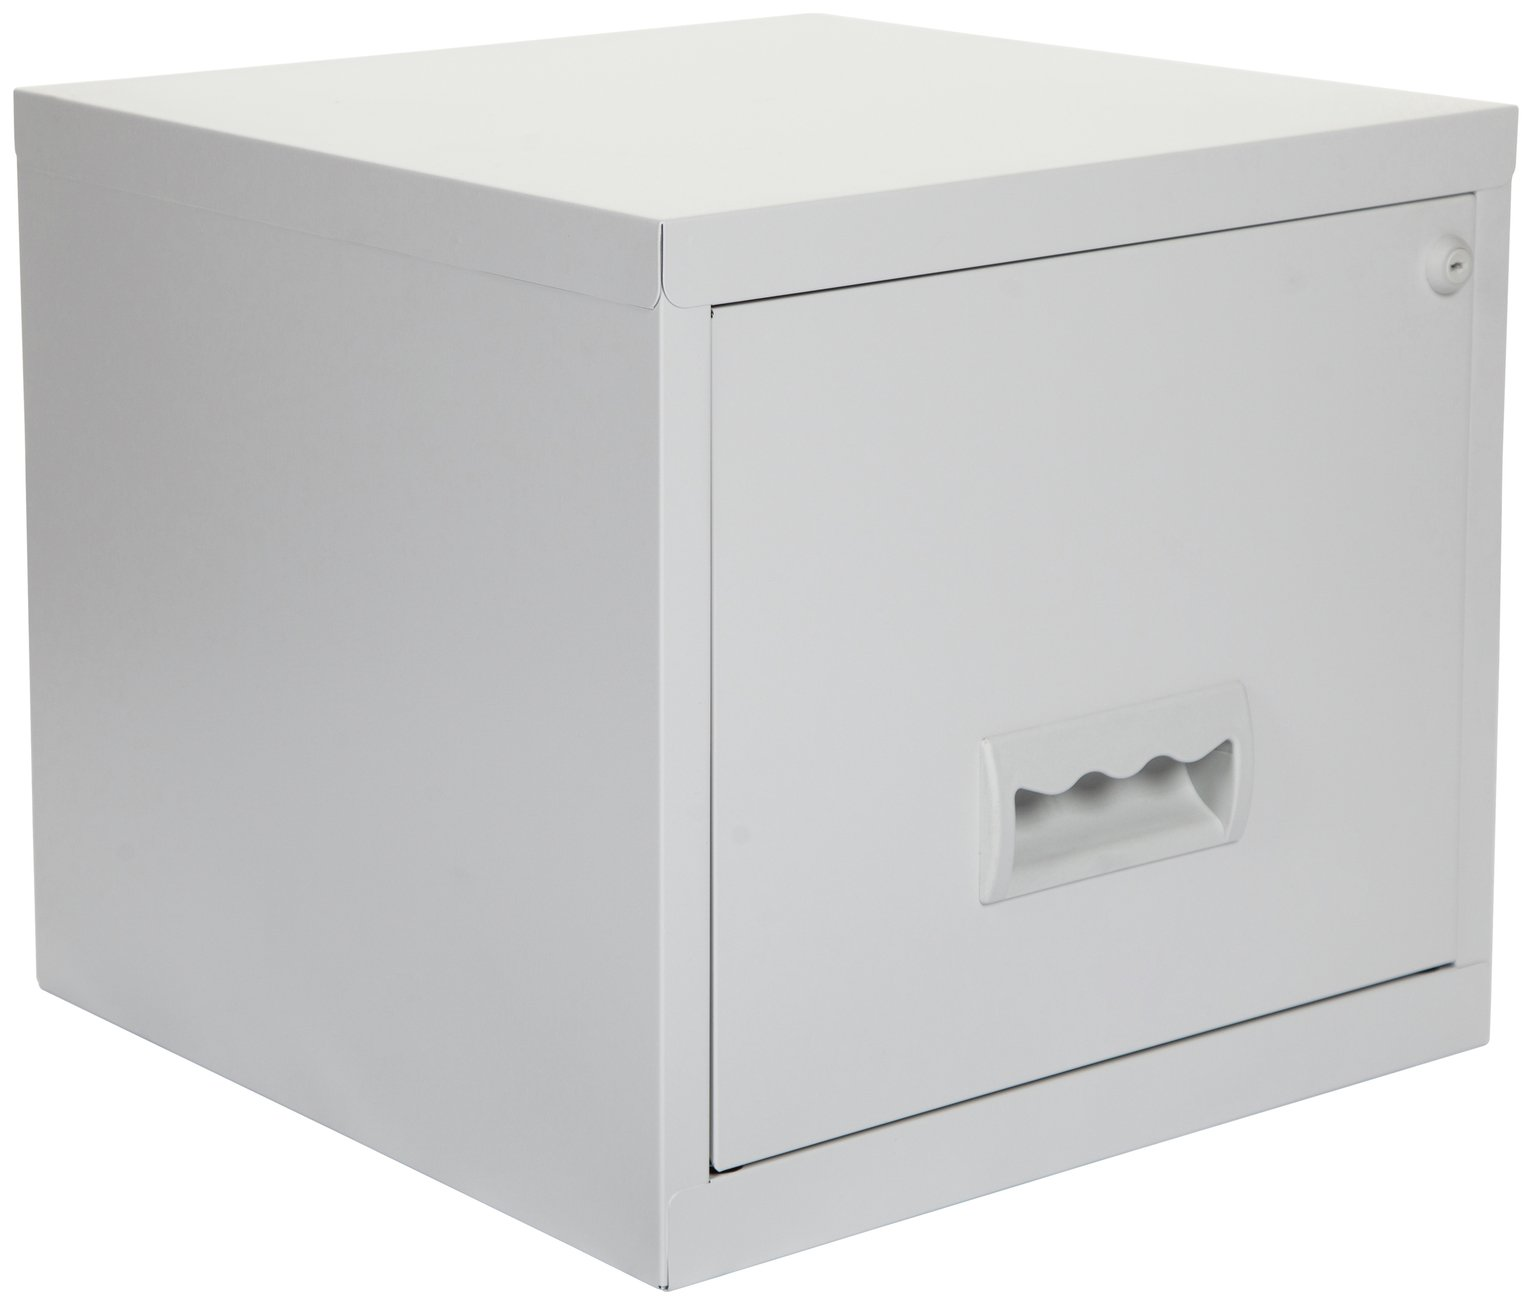 Pierre Henry 1 Drawer Filing Cabinet